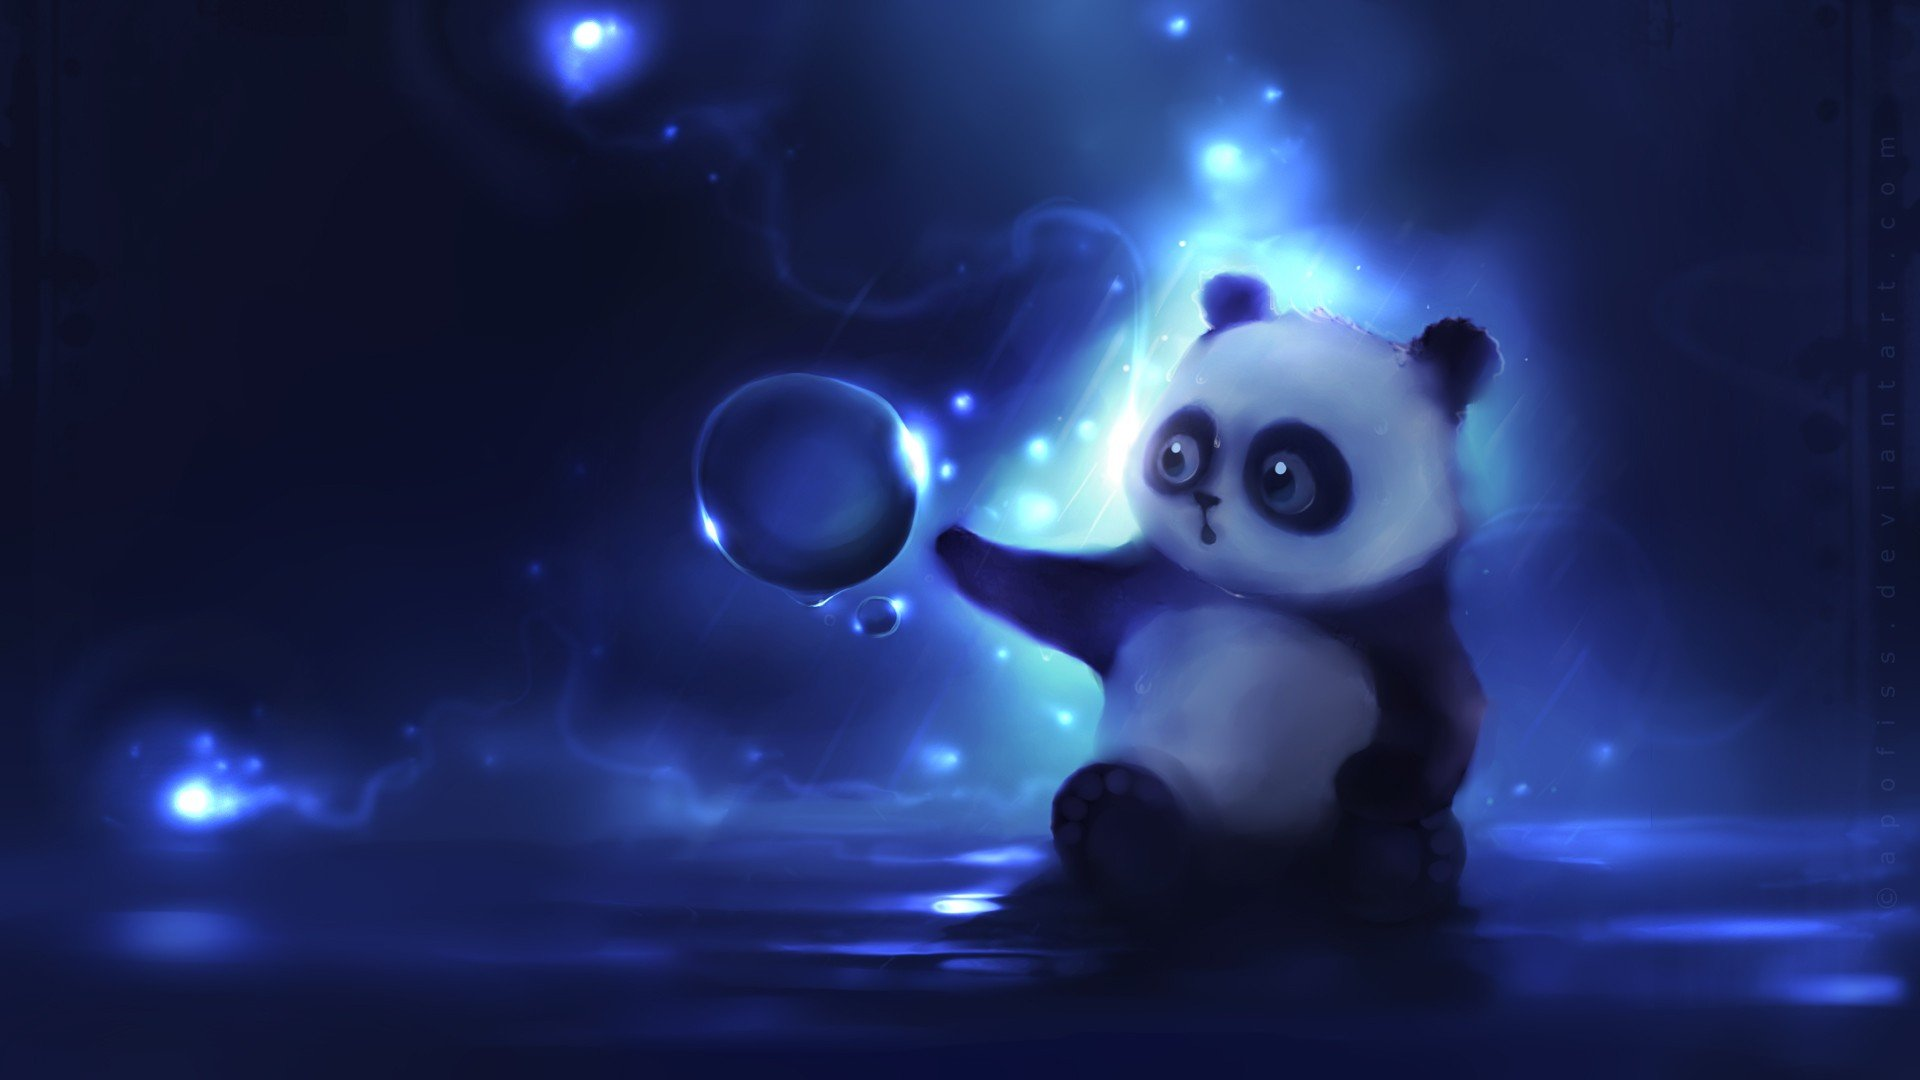 Cute for Desktop 30051 wallpaper